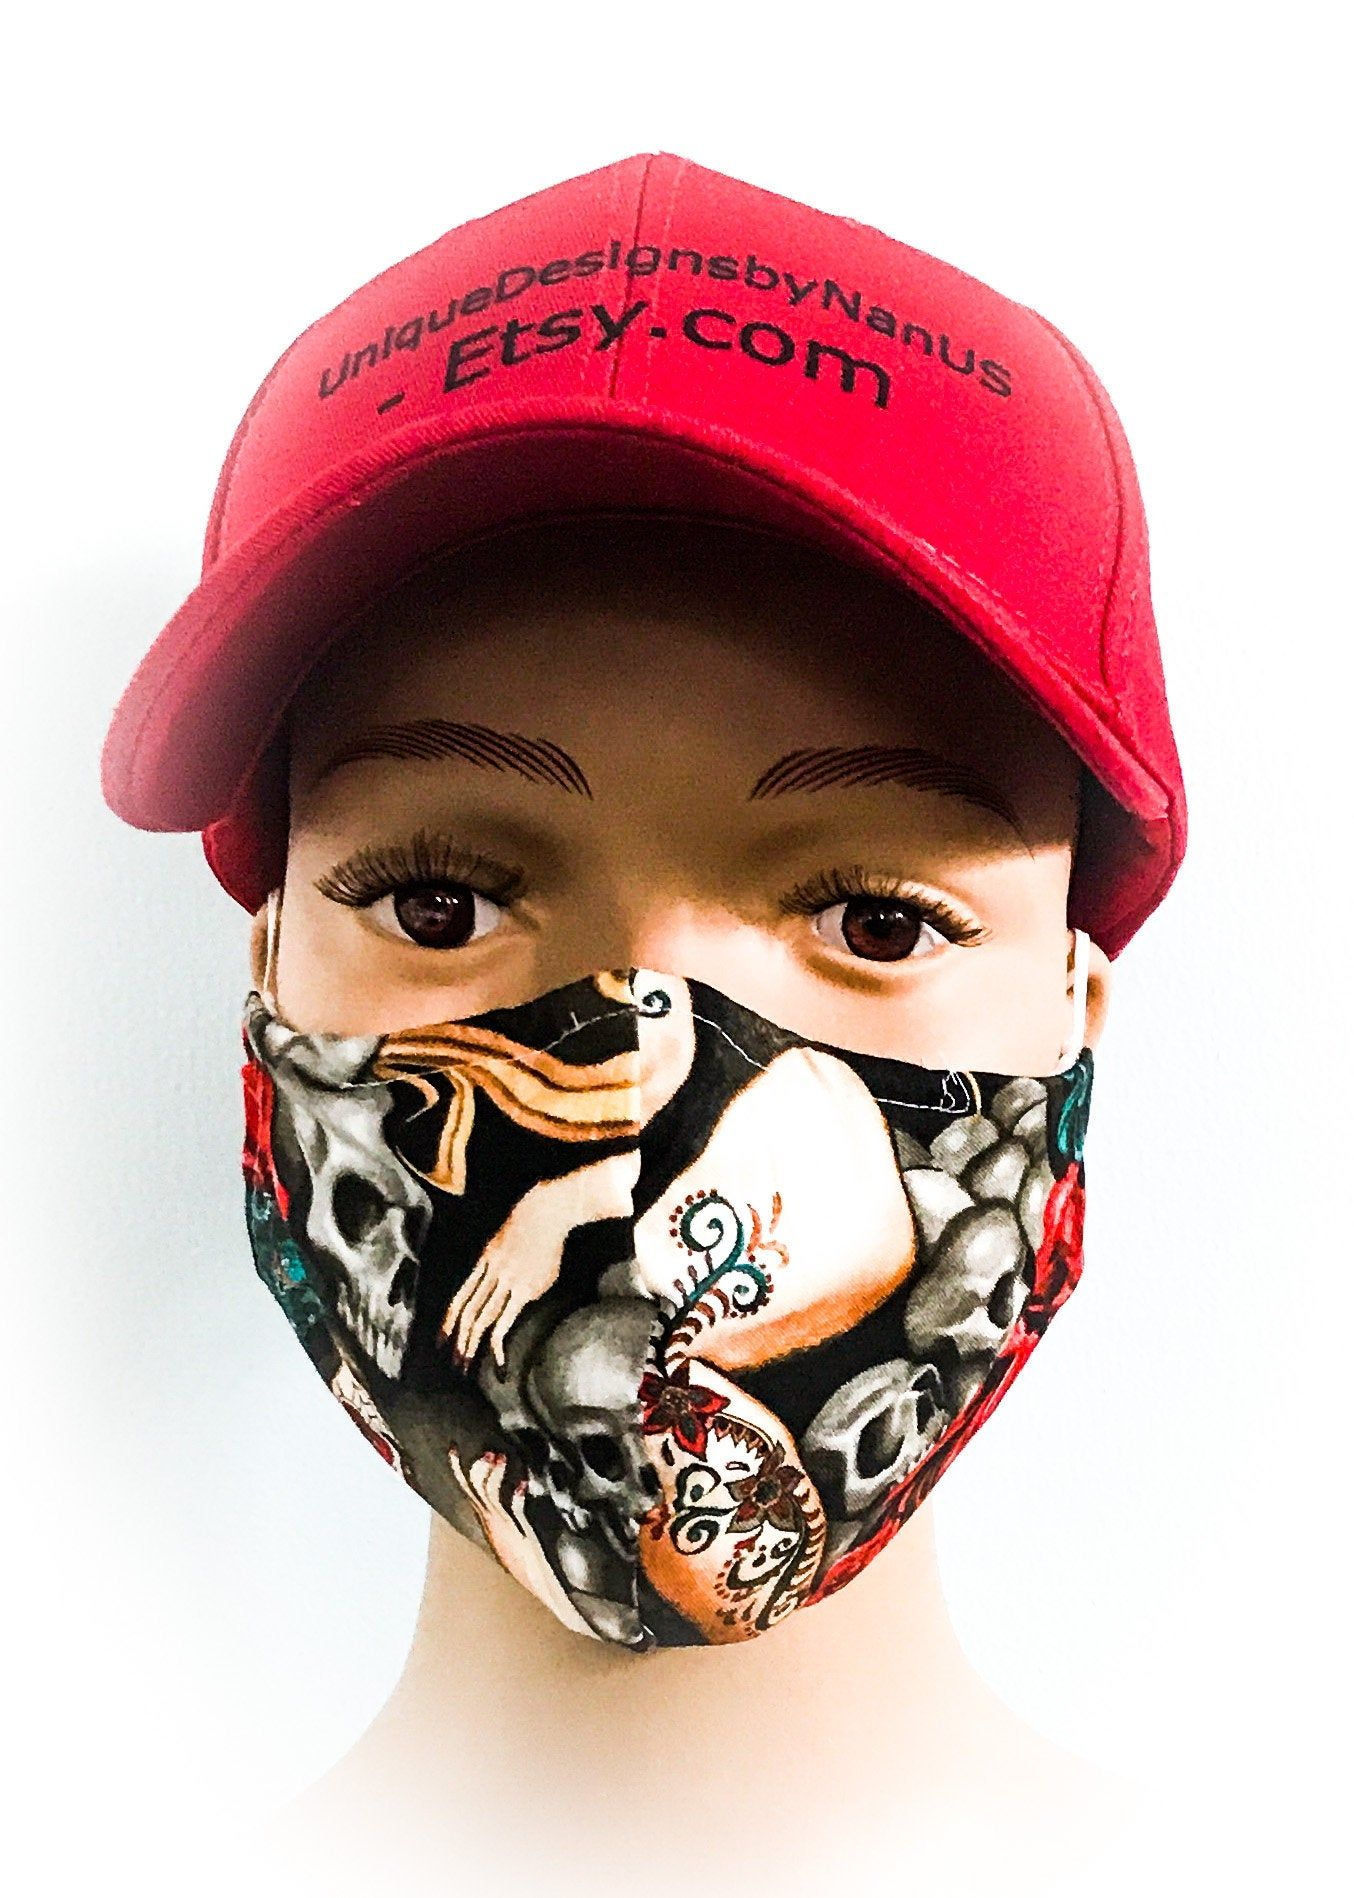 Boys Face Mask Youth Face Mask Superhero Face Mask Cartoon Etsy In 2020 Face Mask Mask For Kids Protective Mask